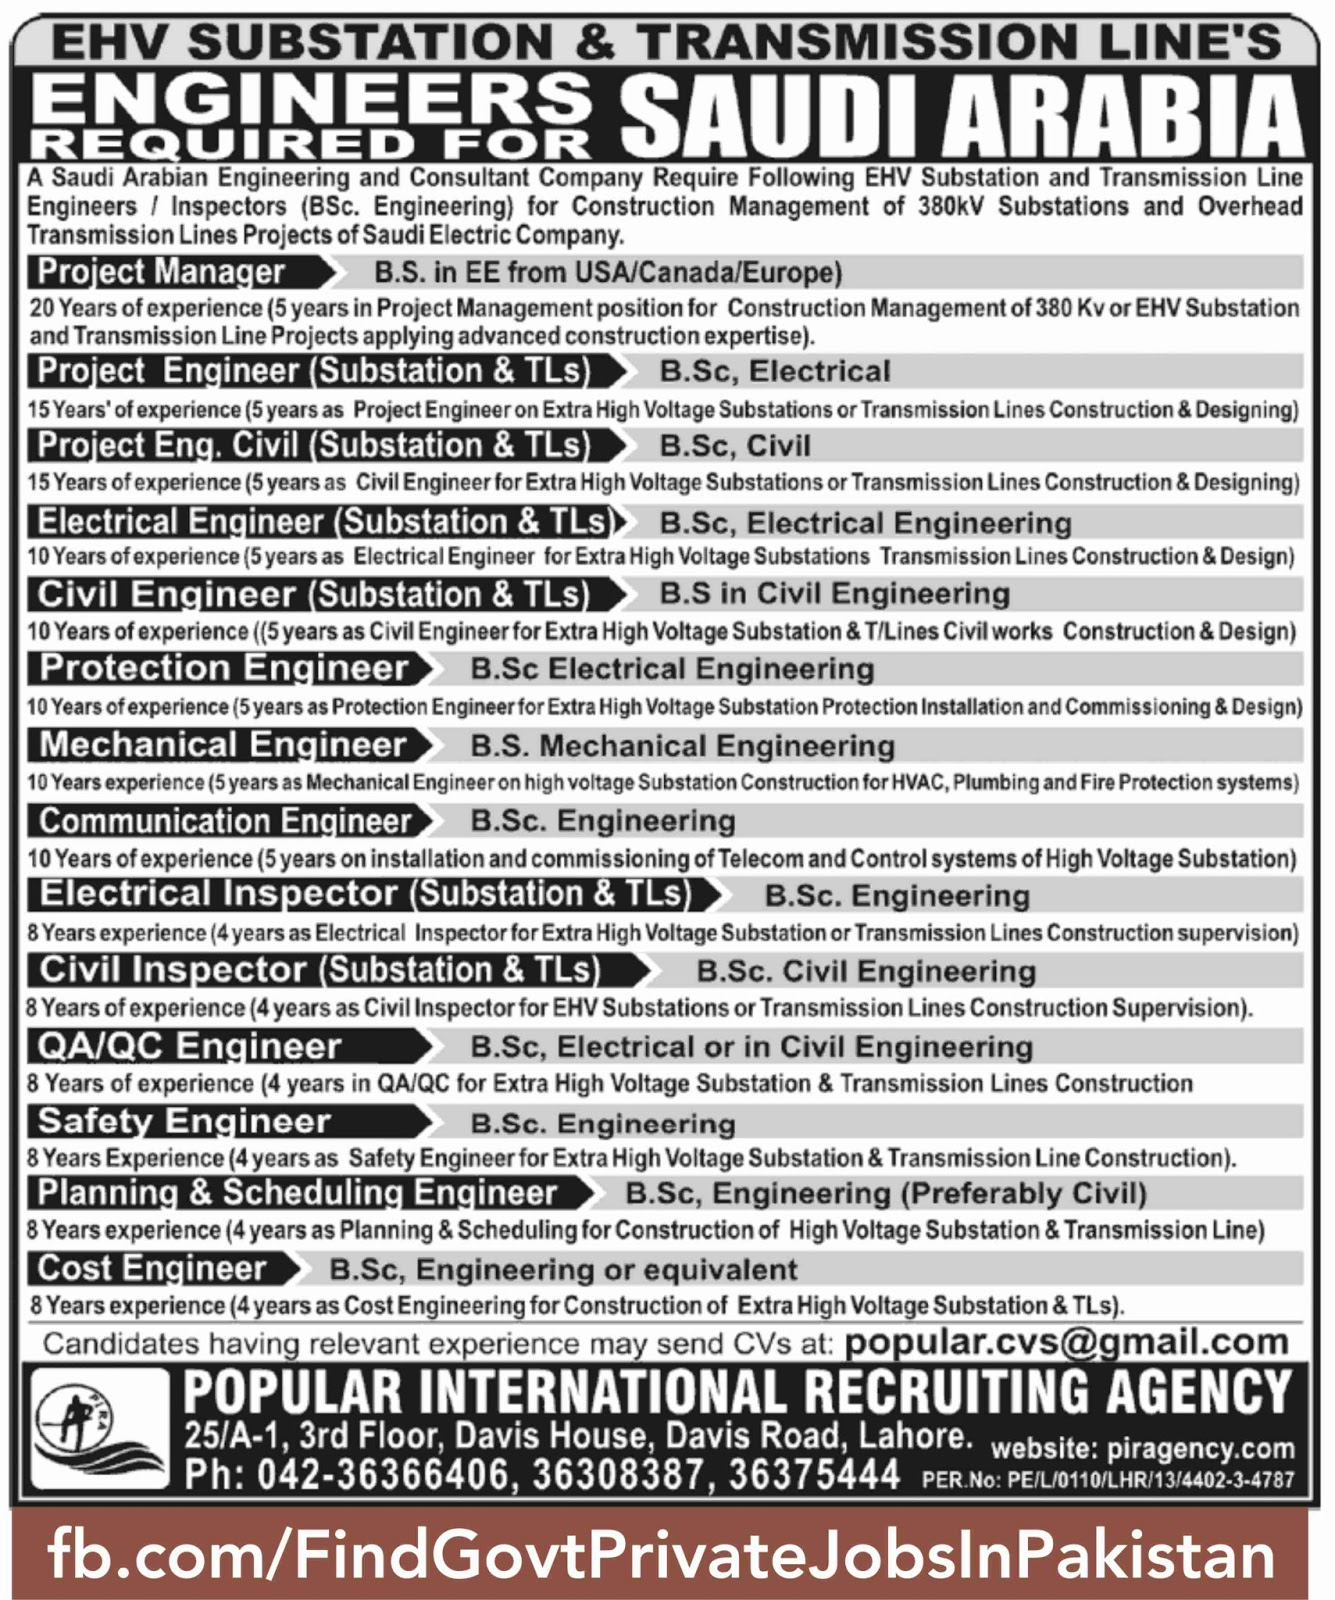 job opportunities published in newspaper